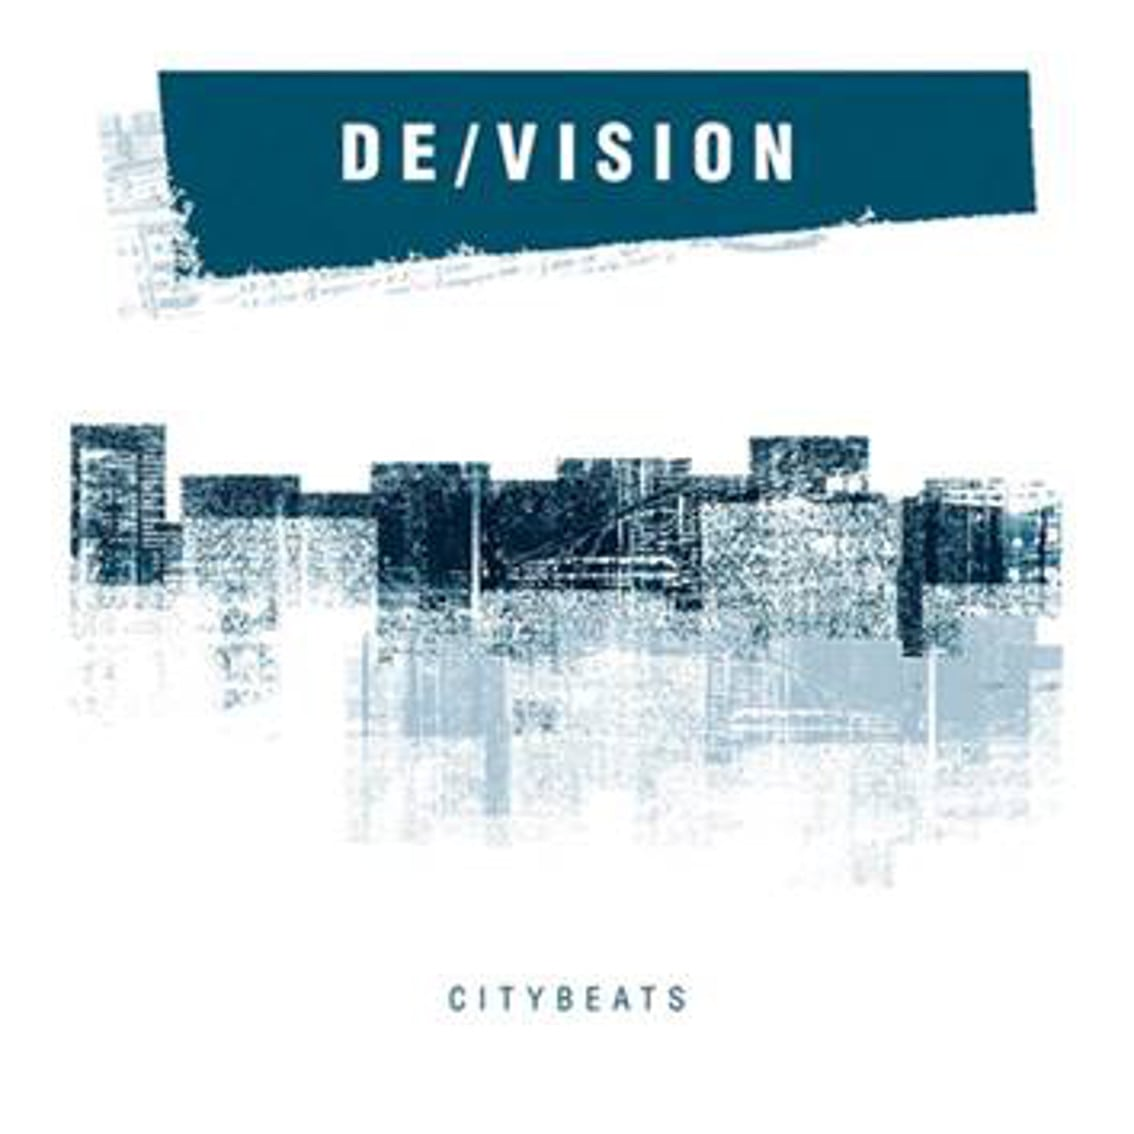 De/Vision to release new album'Citybeats' in June in 2 versions: 2CD and CD - check a first preview